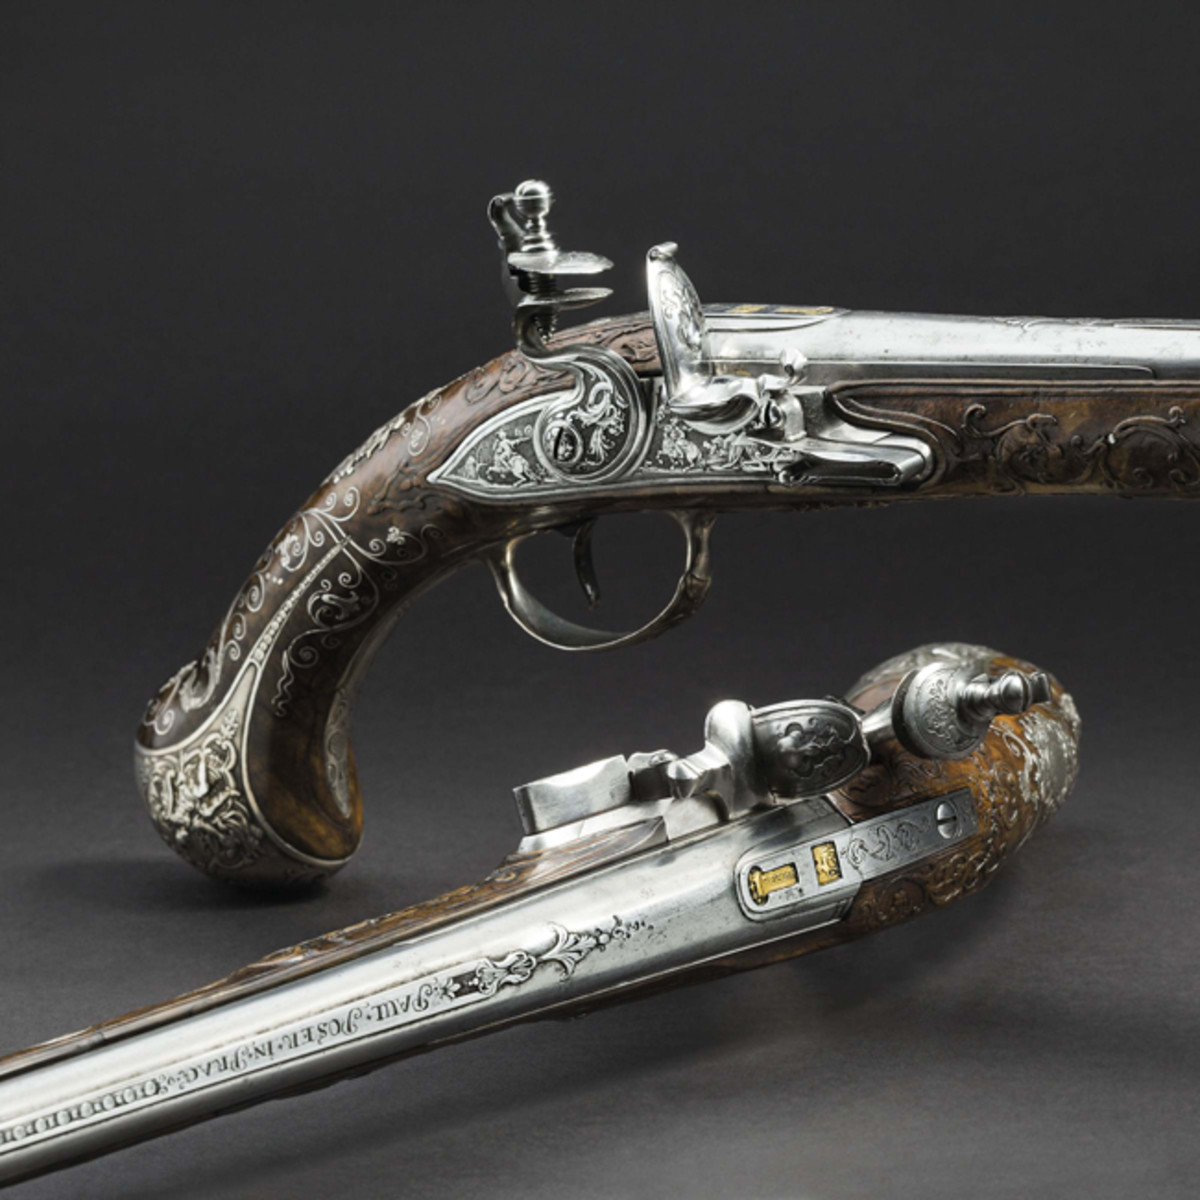 Pair of significant de luxe flintlock pistols, armory of the Princes von Lobkowitz.